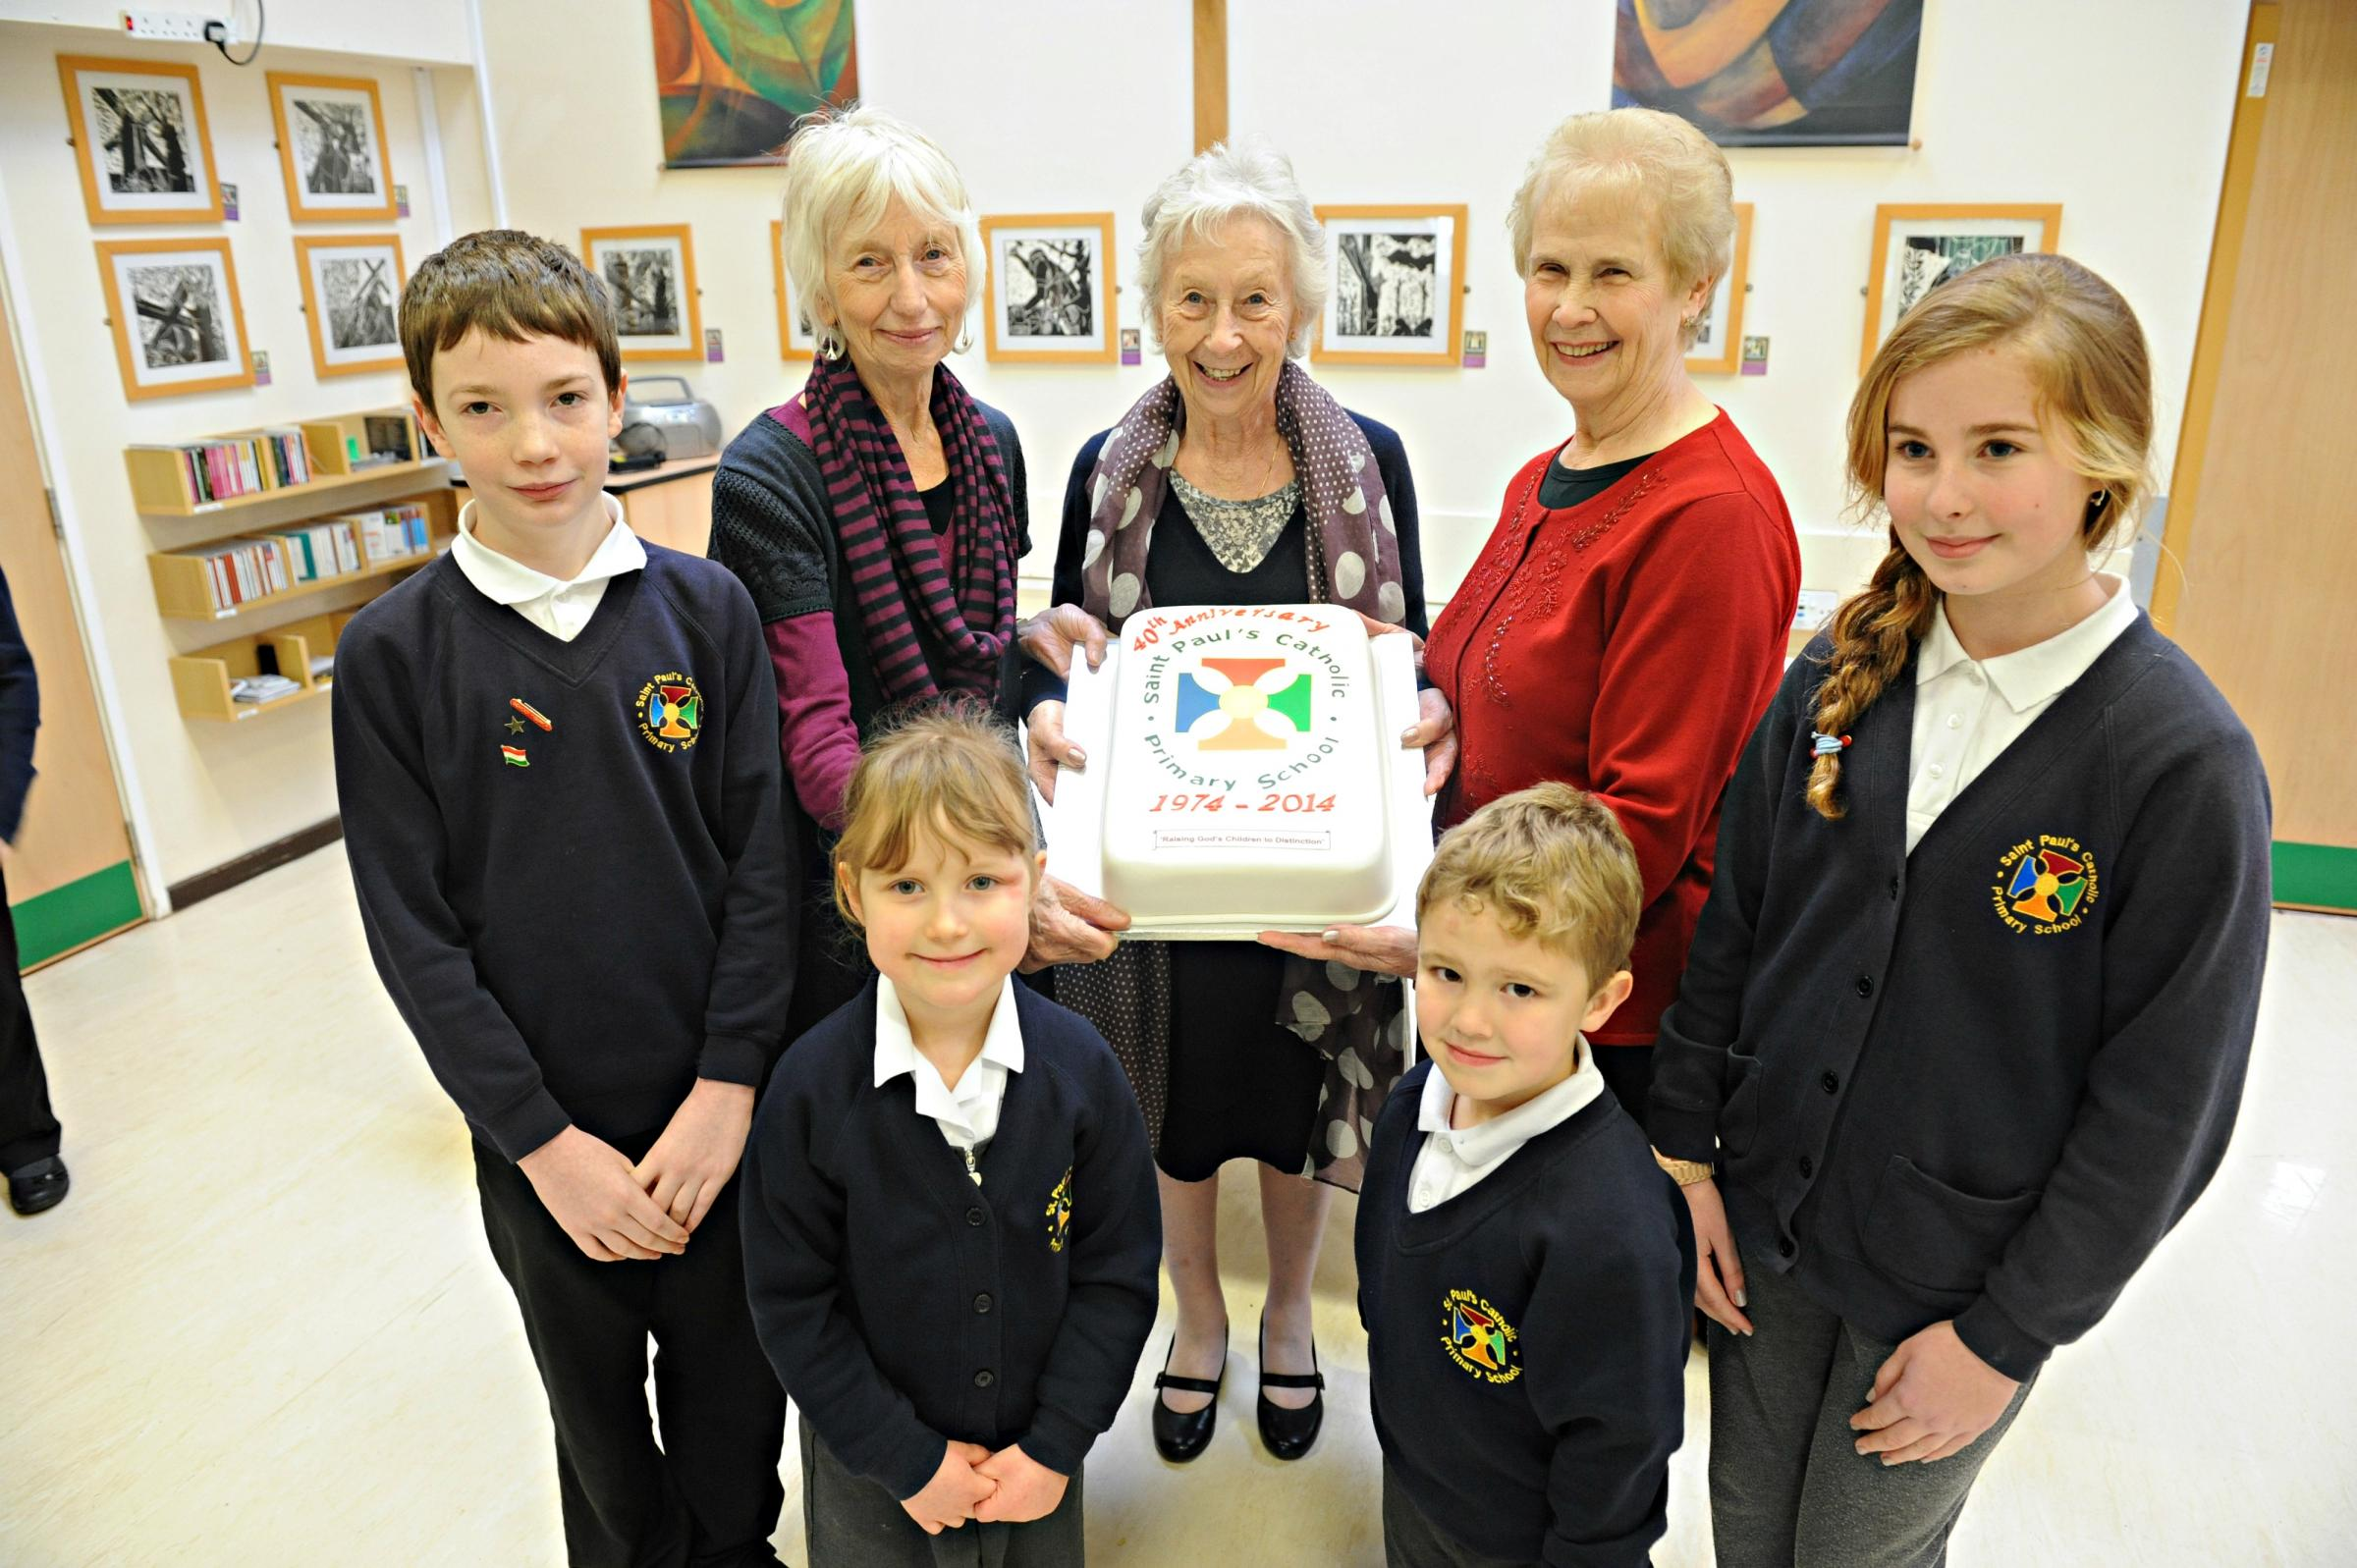 Yate Catholic school marks 40th anniversary